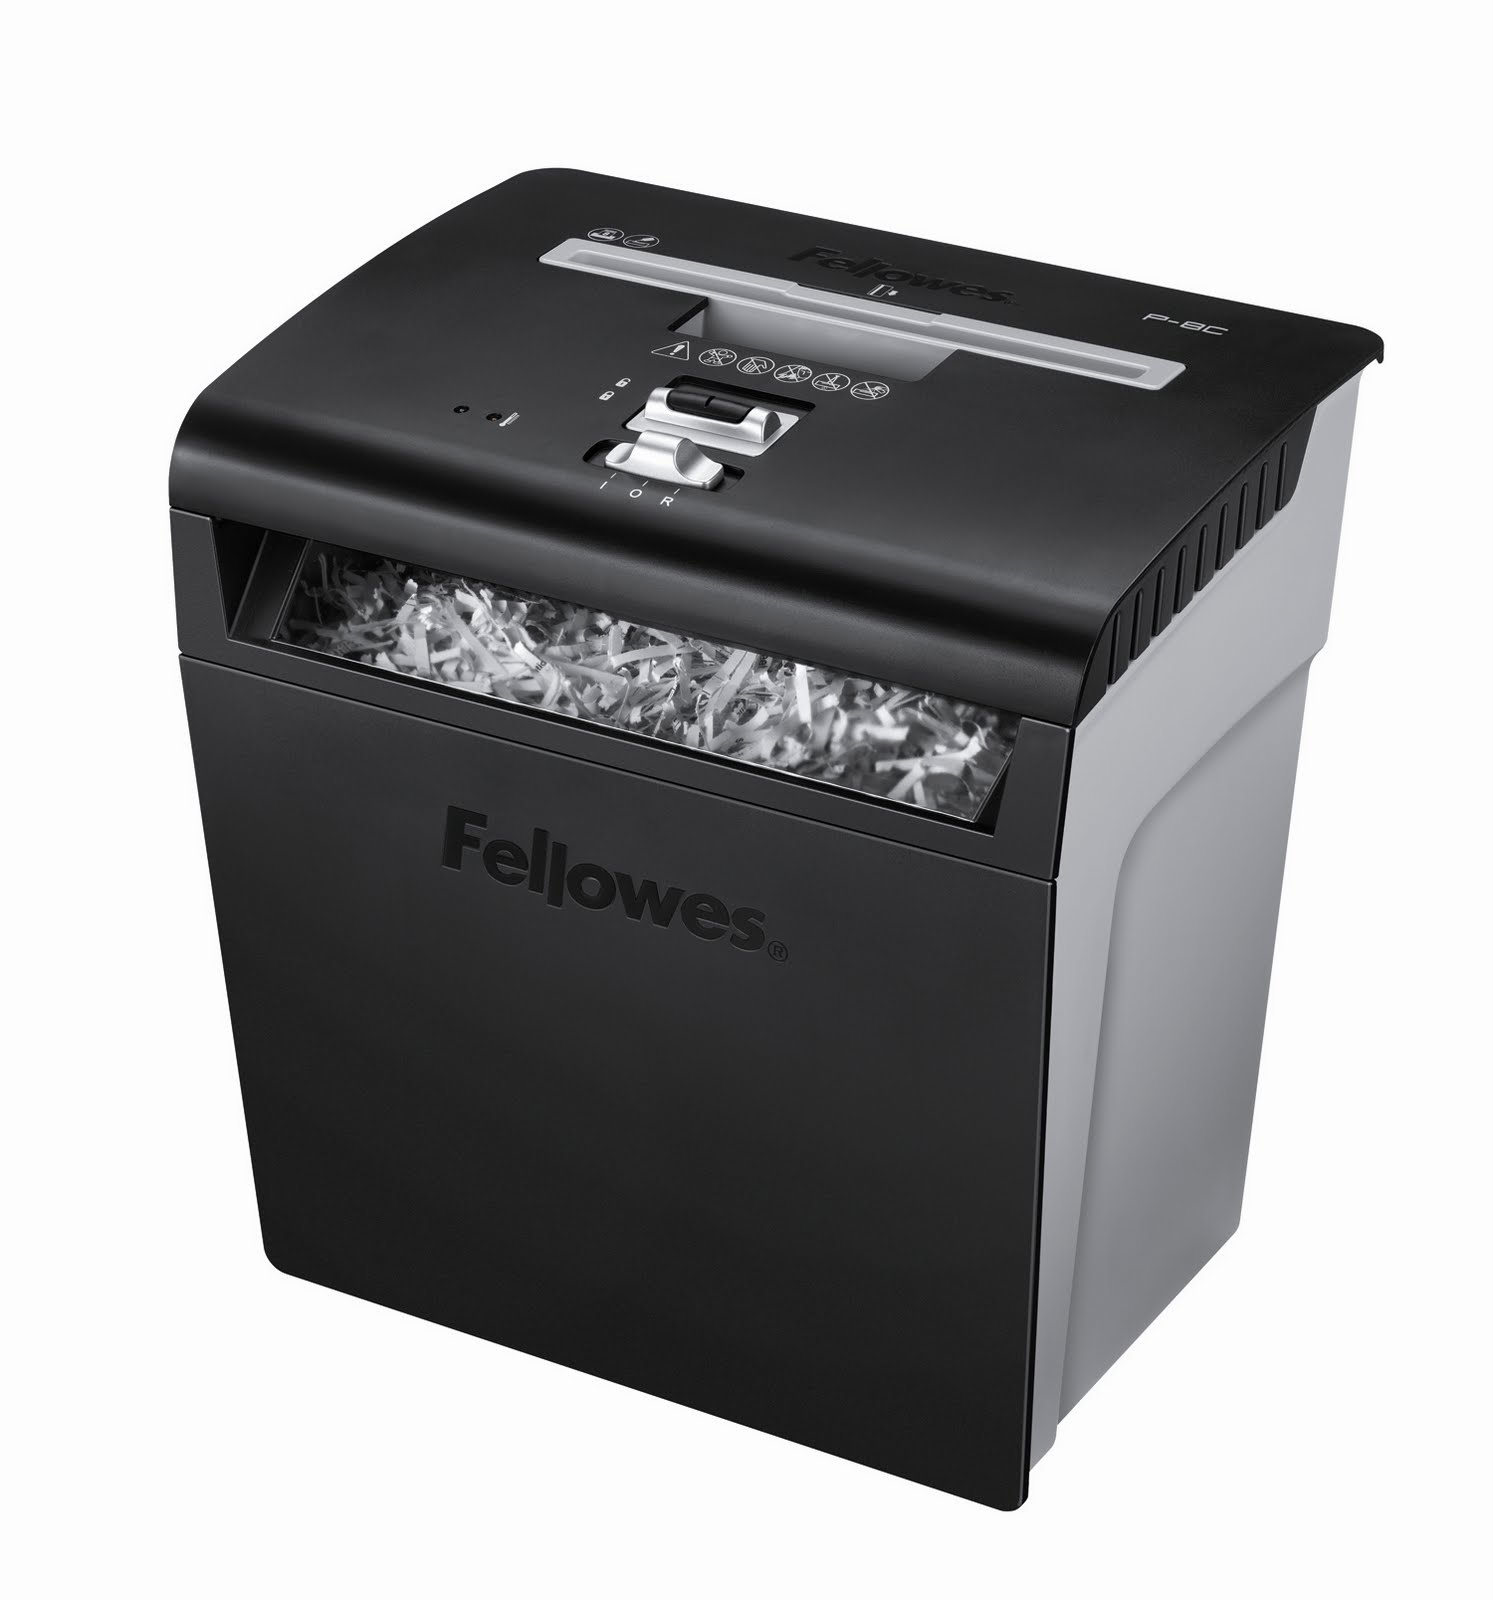 New paper shredder